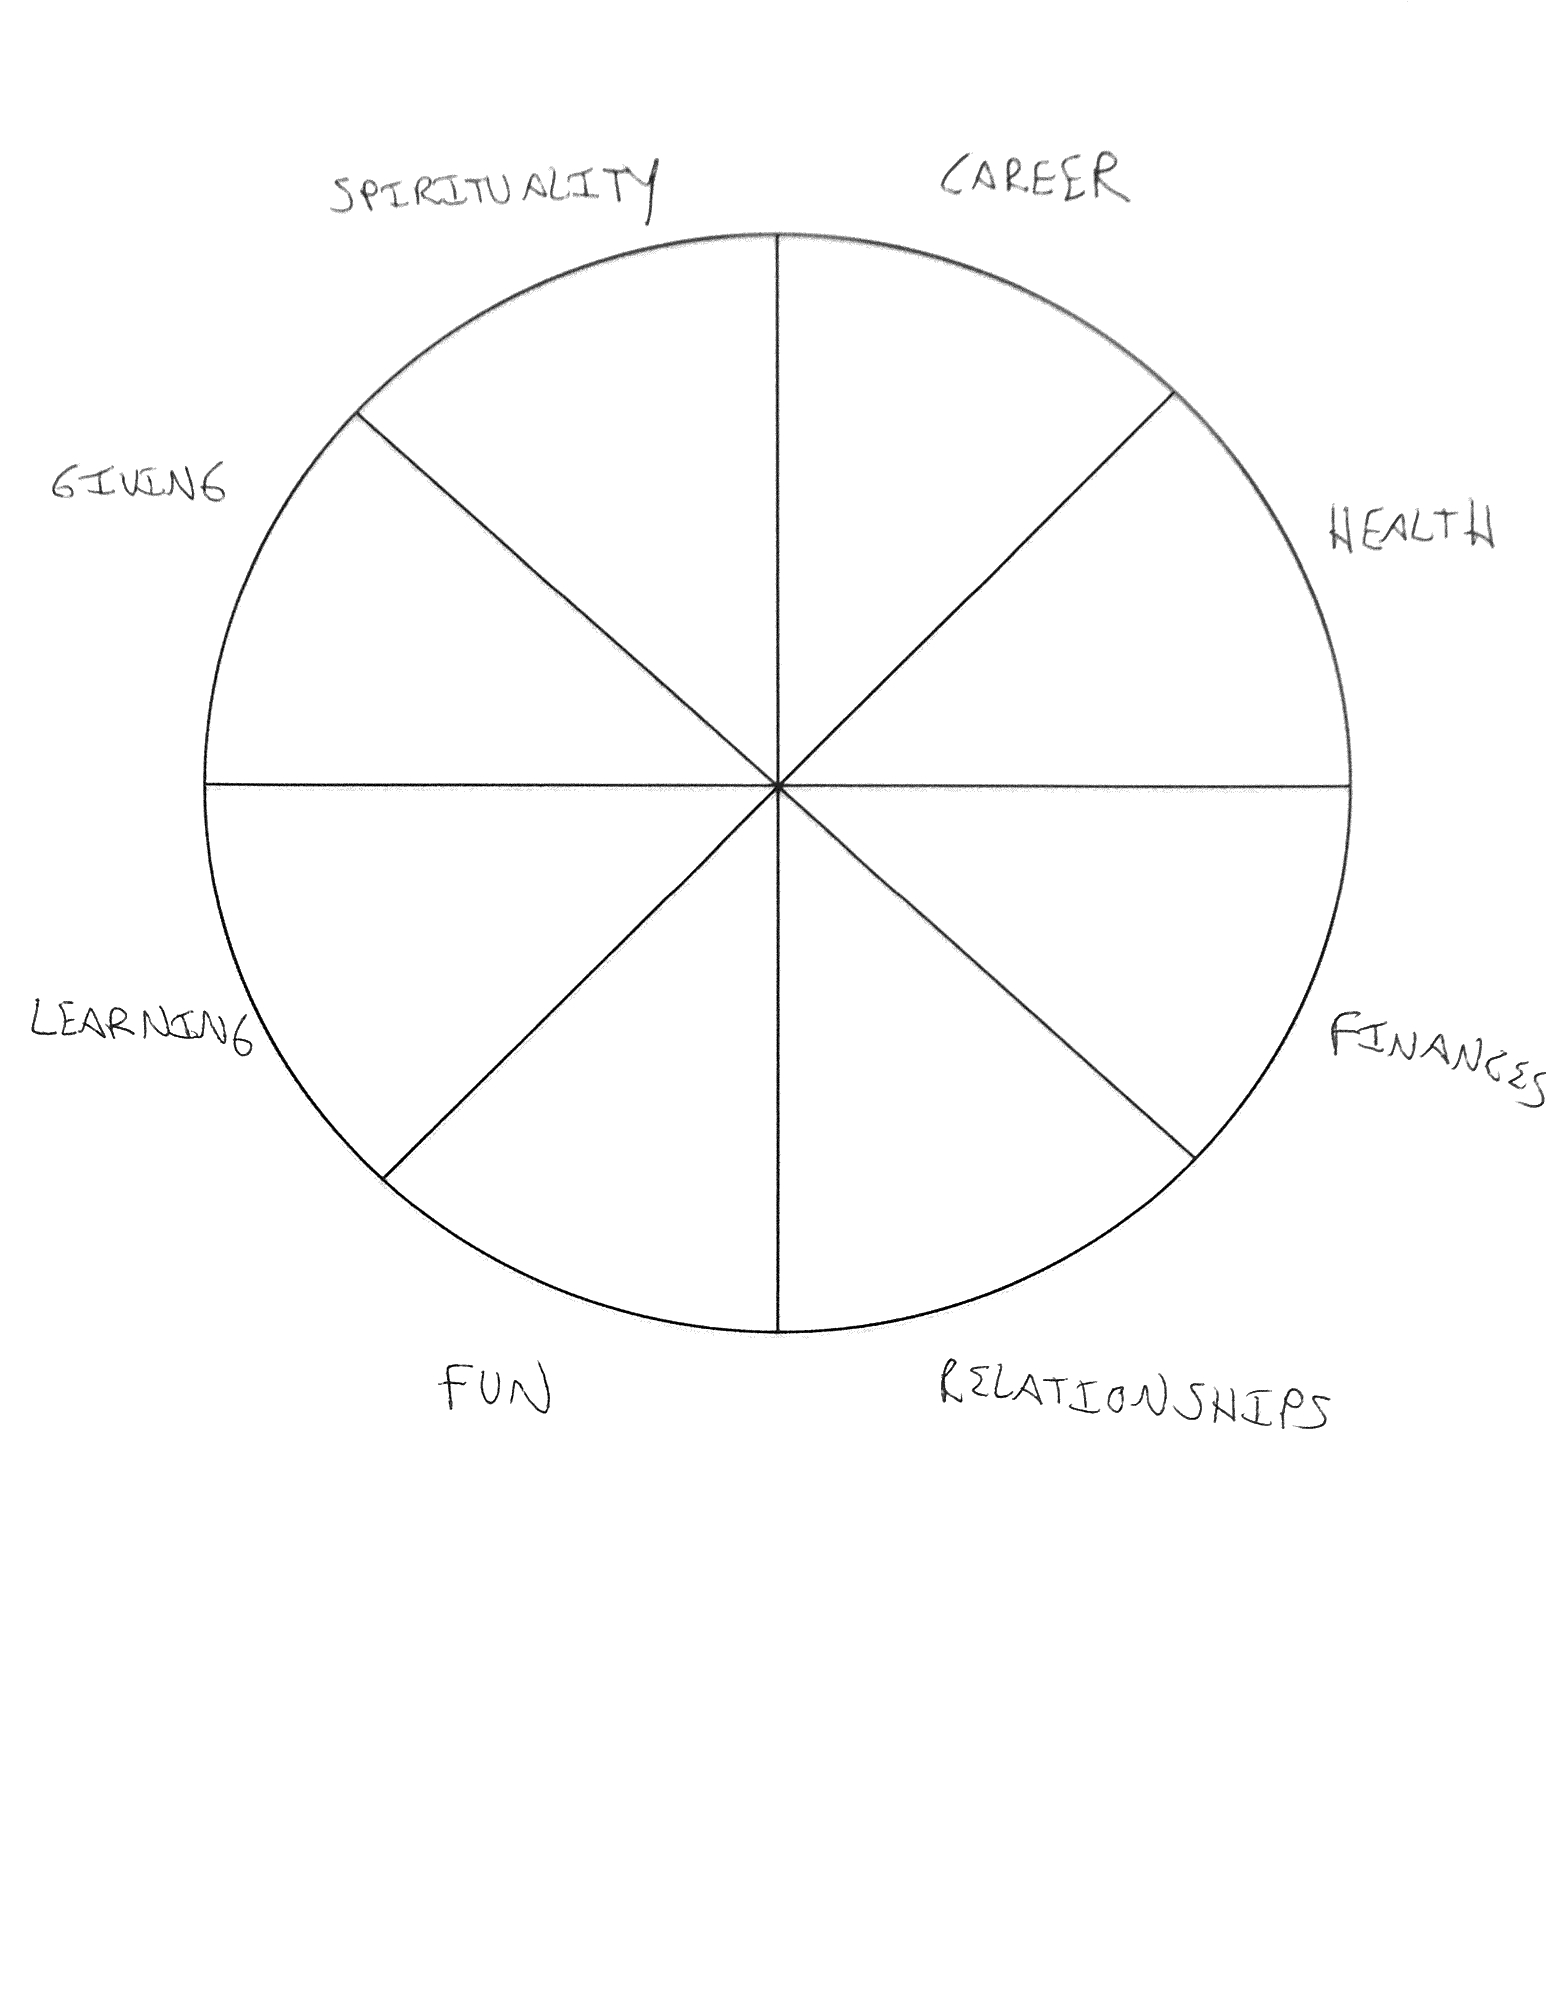 The Wheel Of Life: How To Plan For A Life Of Balanced Success Intended For Wheel Of Life Template Blank